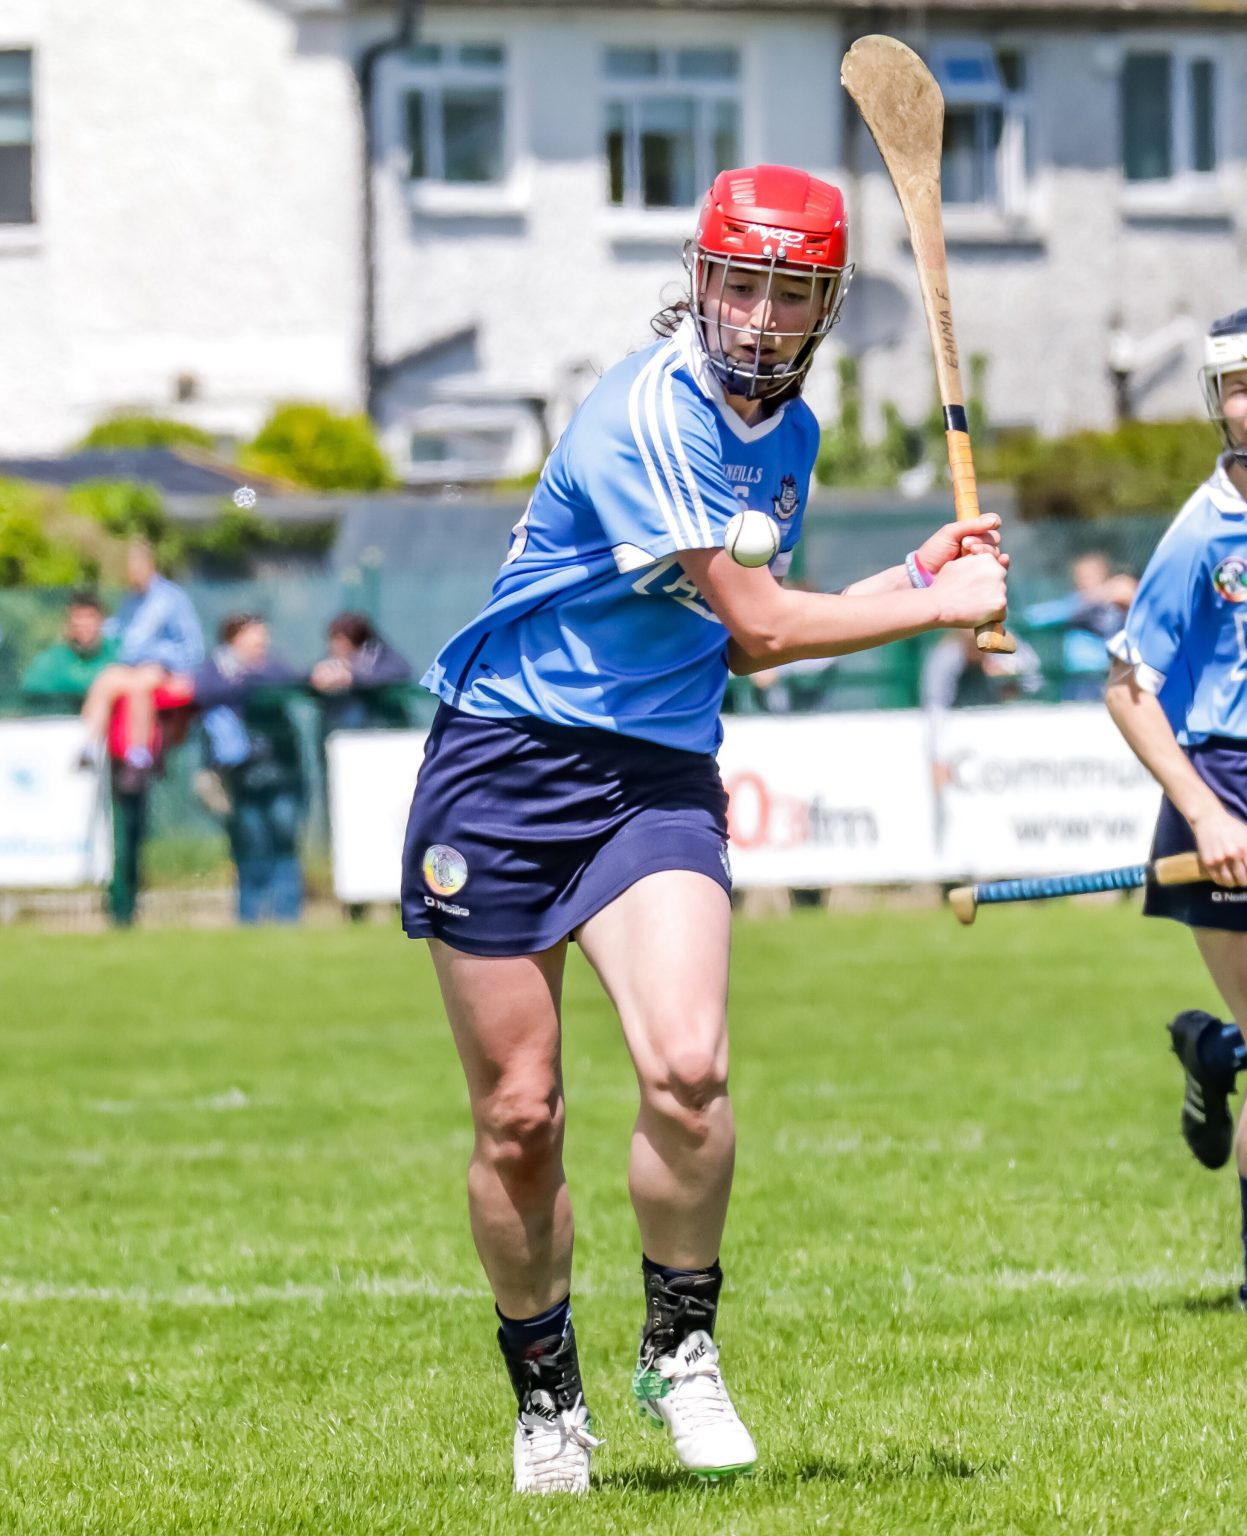 Dublin Player In Sky Blue Jersey and red helmet hitting a white ball with a hurl